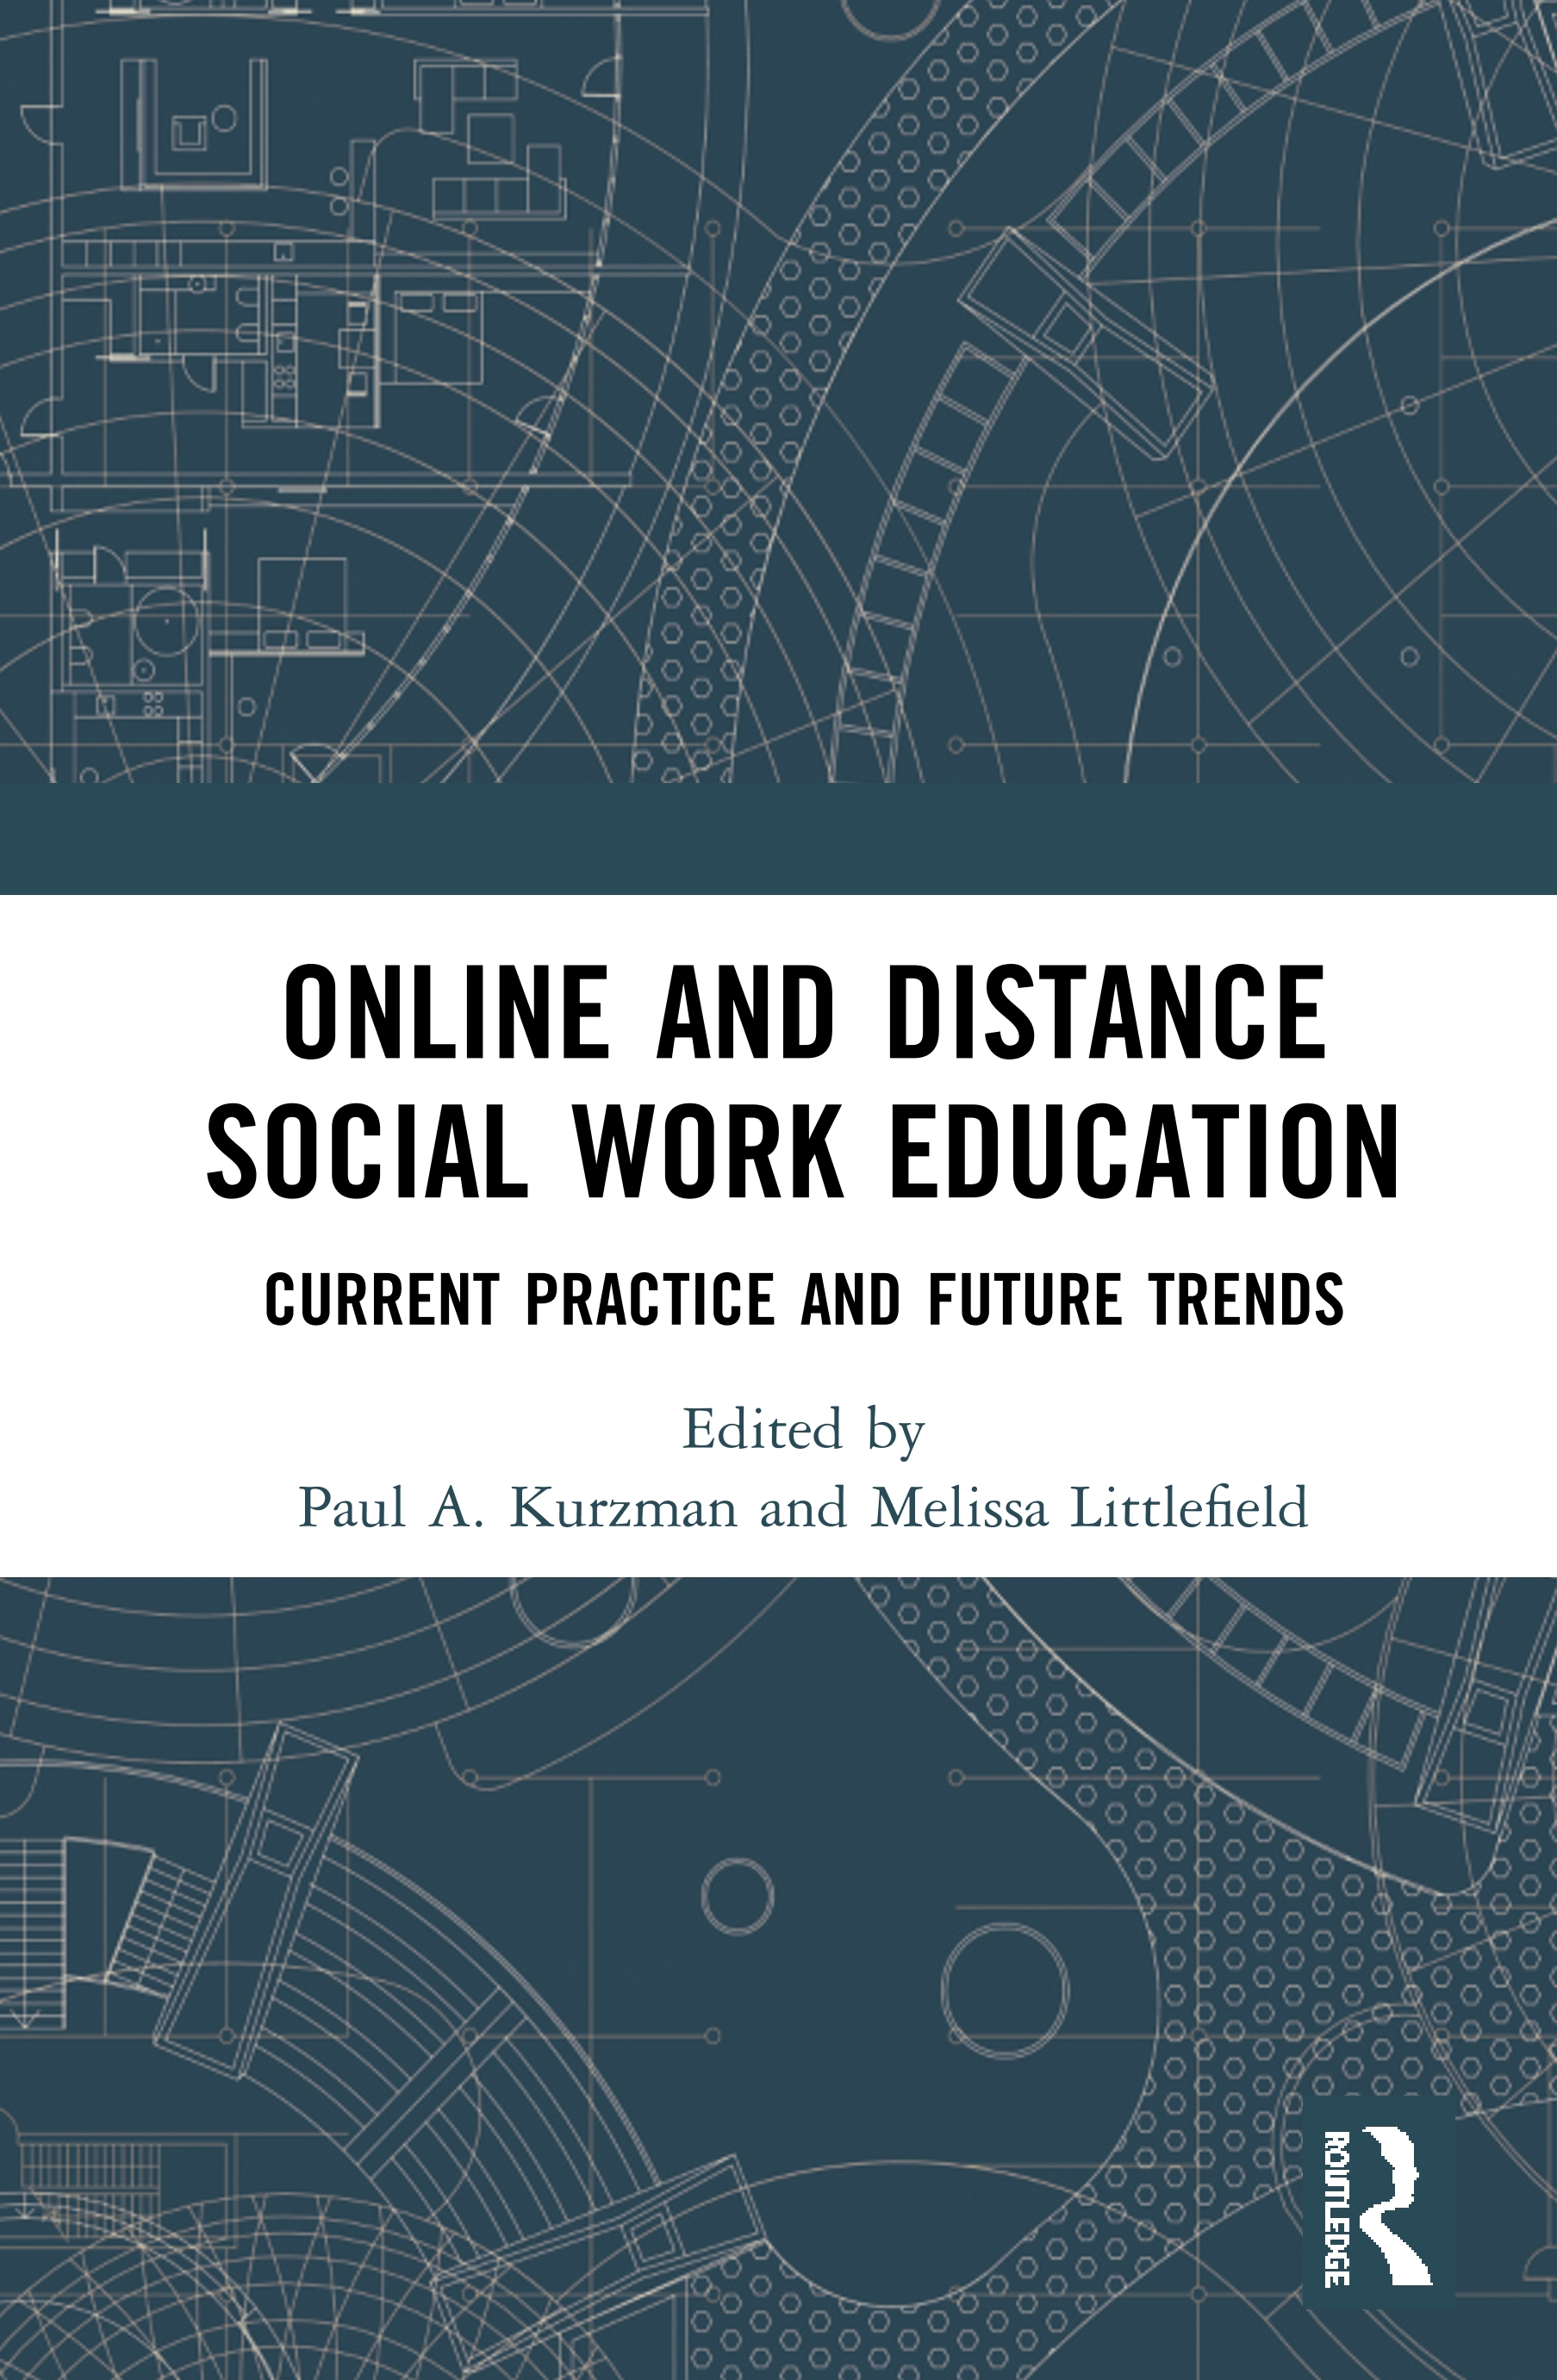 Online and Distance Social Work Education: Current Practice and Future Trends book cover